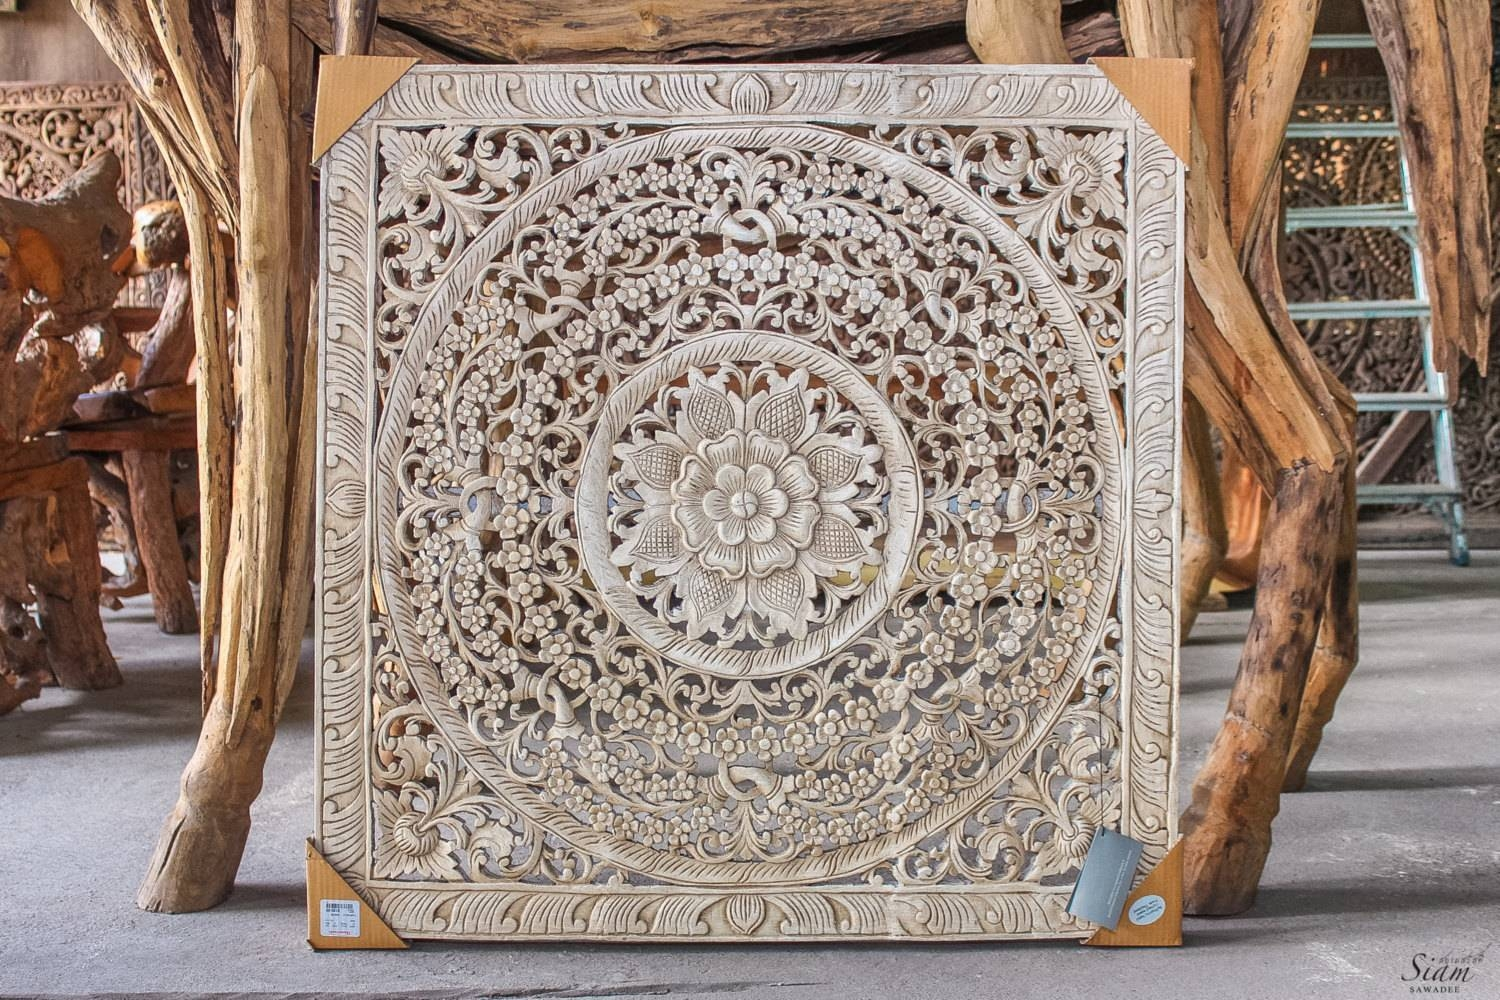 Picture Large Carved Wood Panels Wall Together With Large Carved Intended For Recent Wood Carved Wall Art Panels (View 18 of 25)